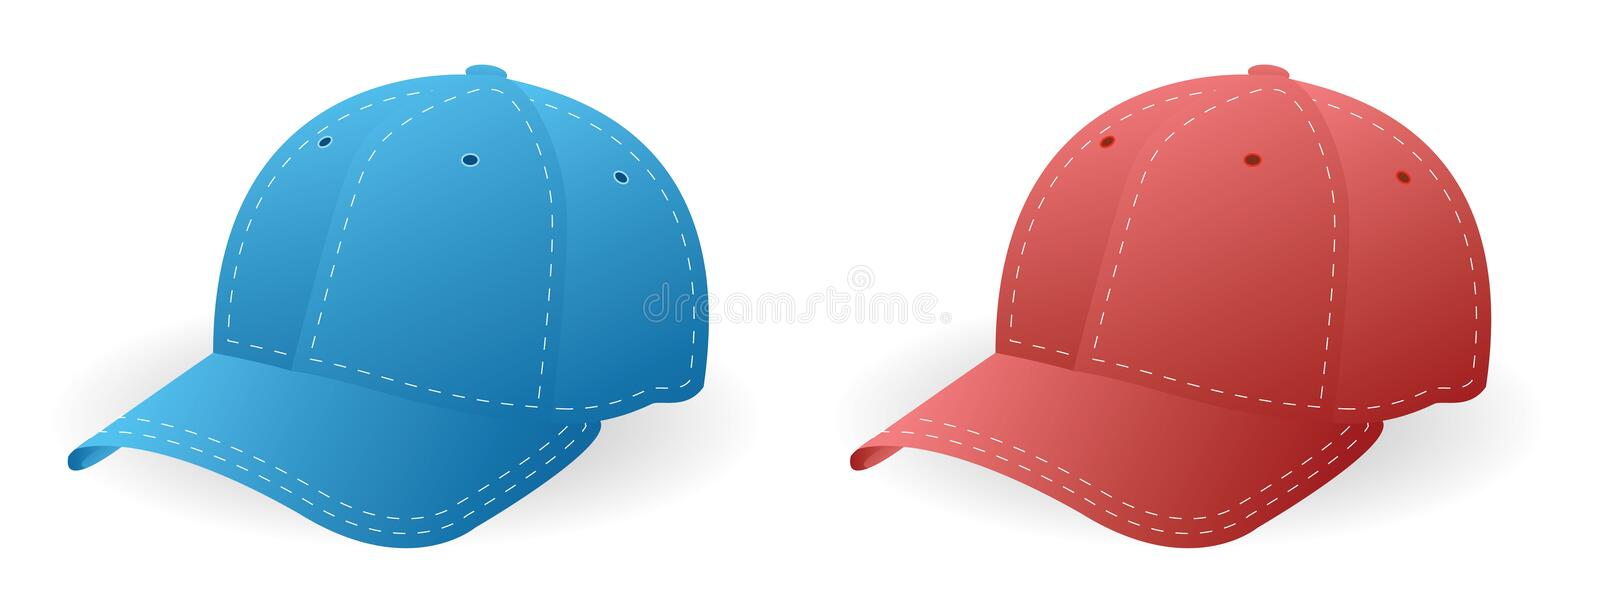 Download Caps blue and red stock vector. Illustration of player - 7969379